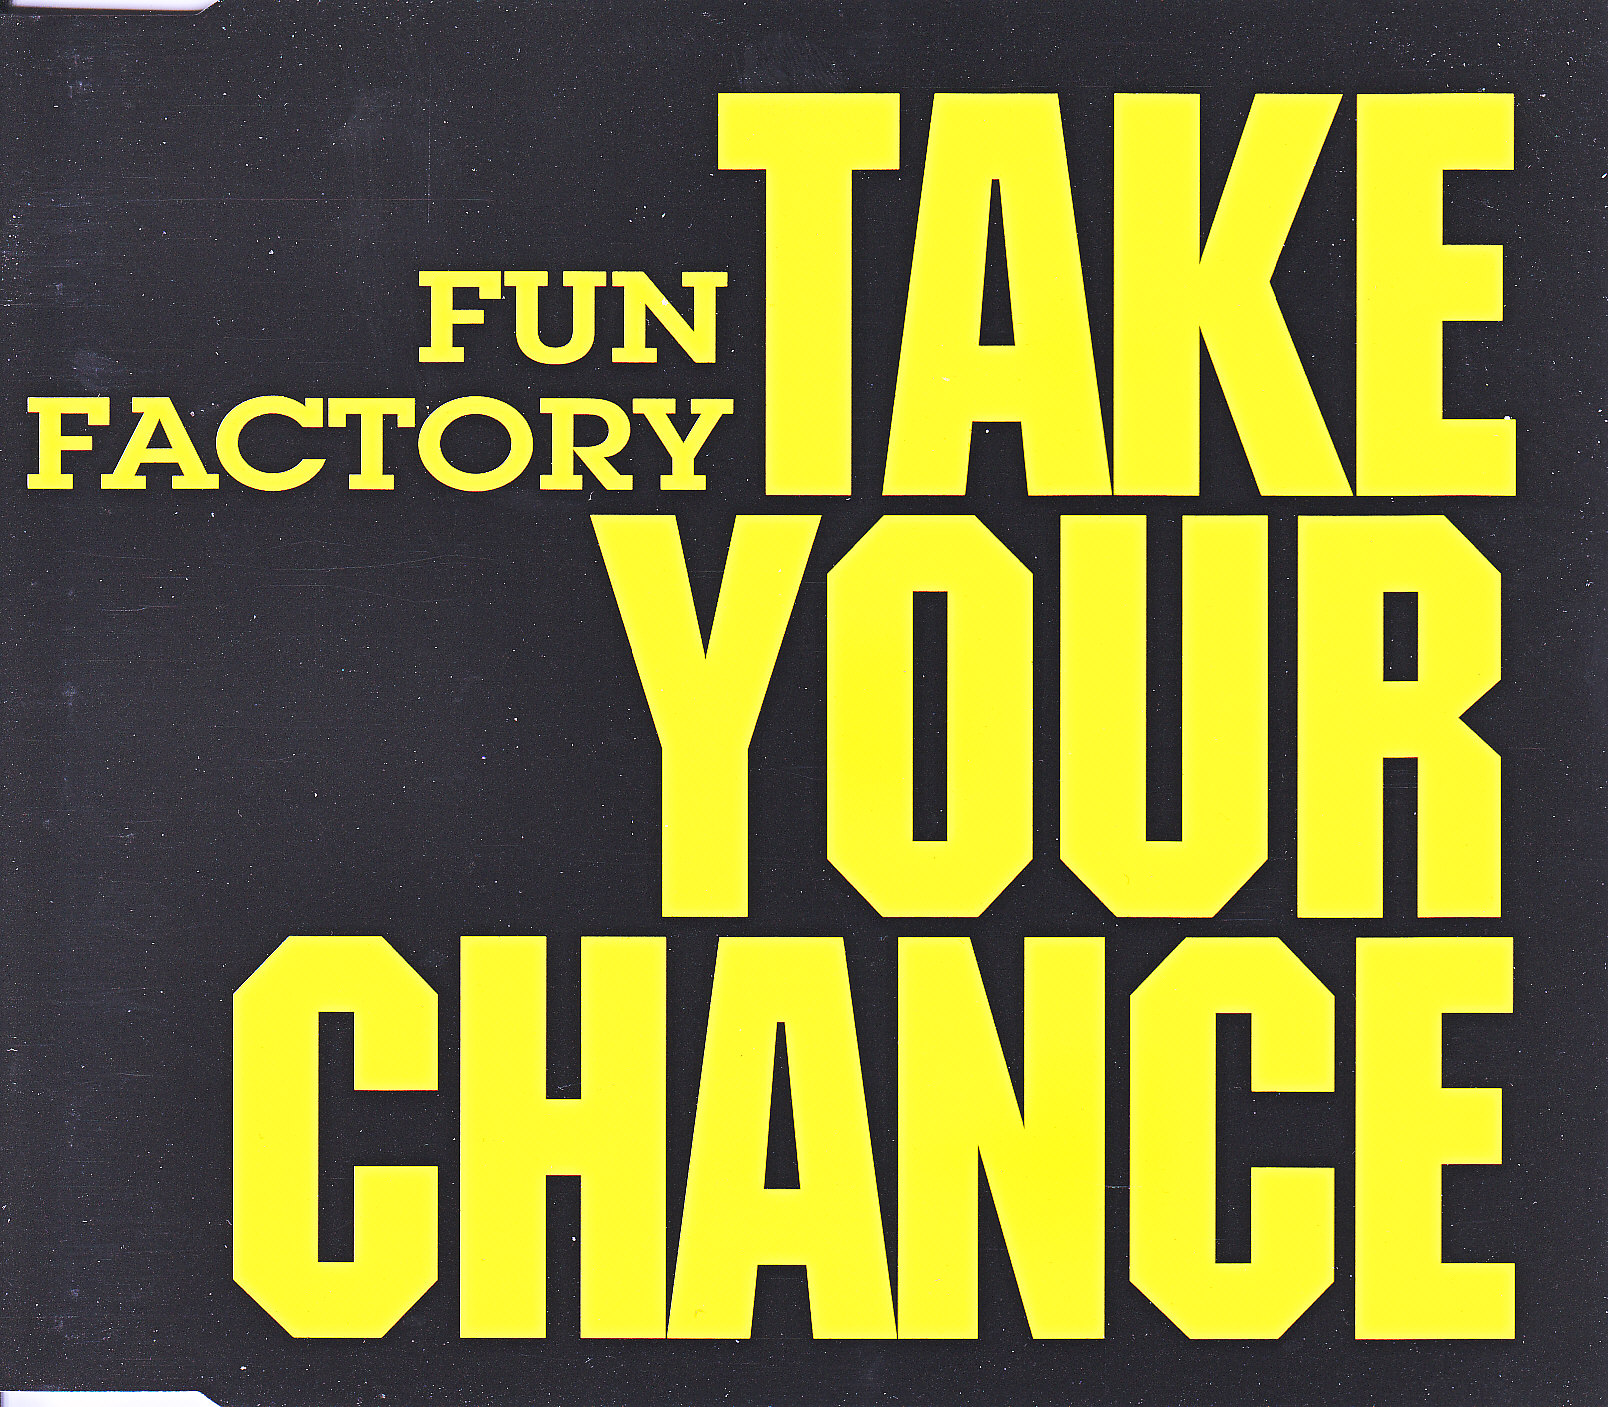 FUN FACTORY==Take a chance